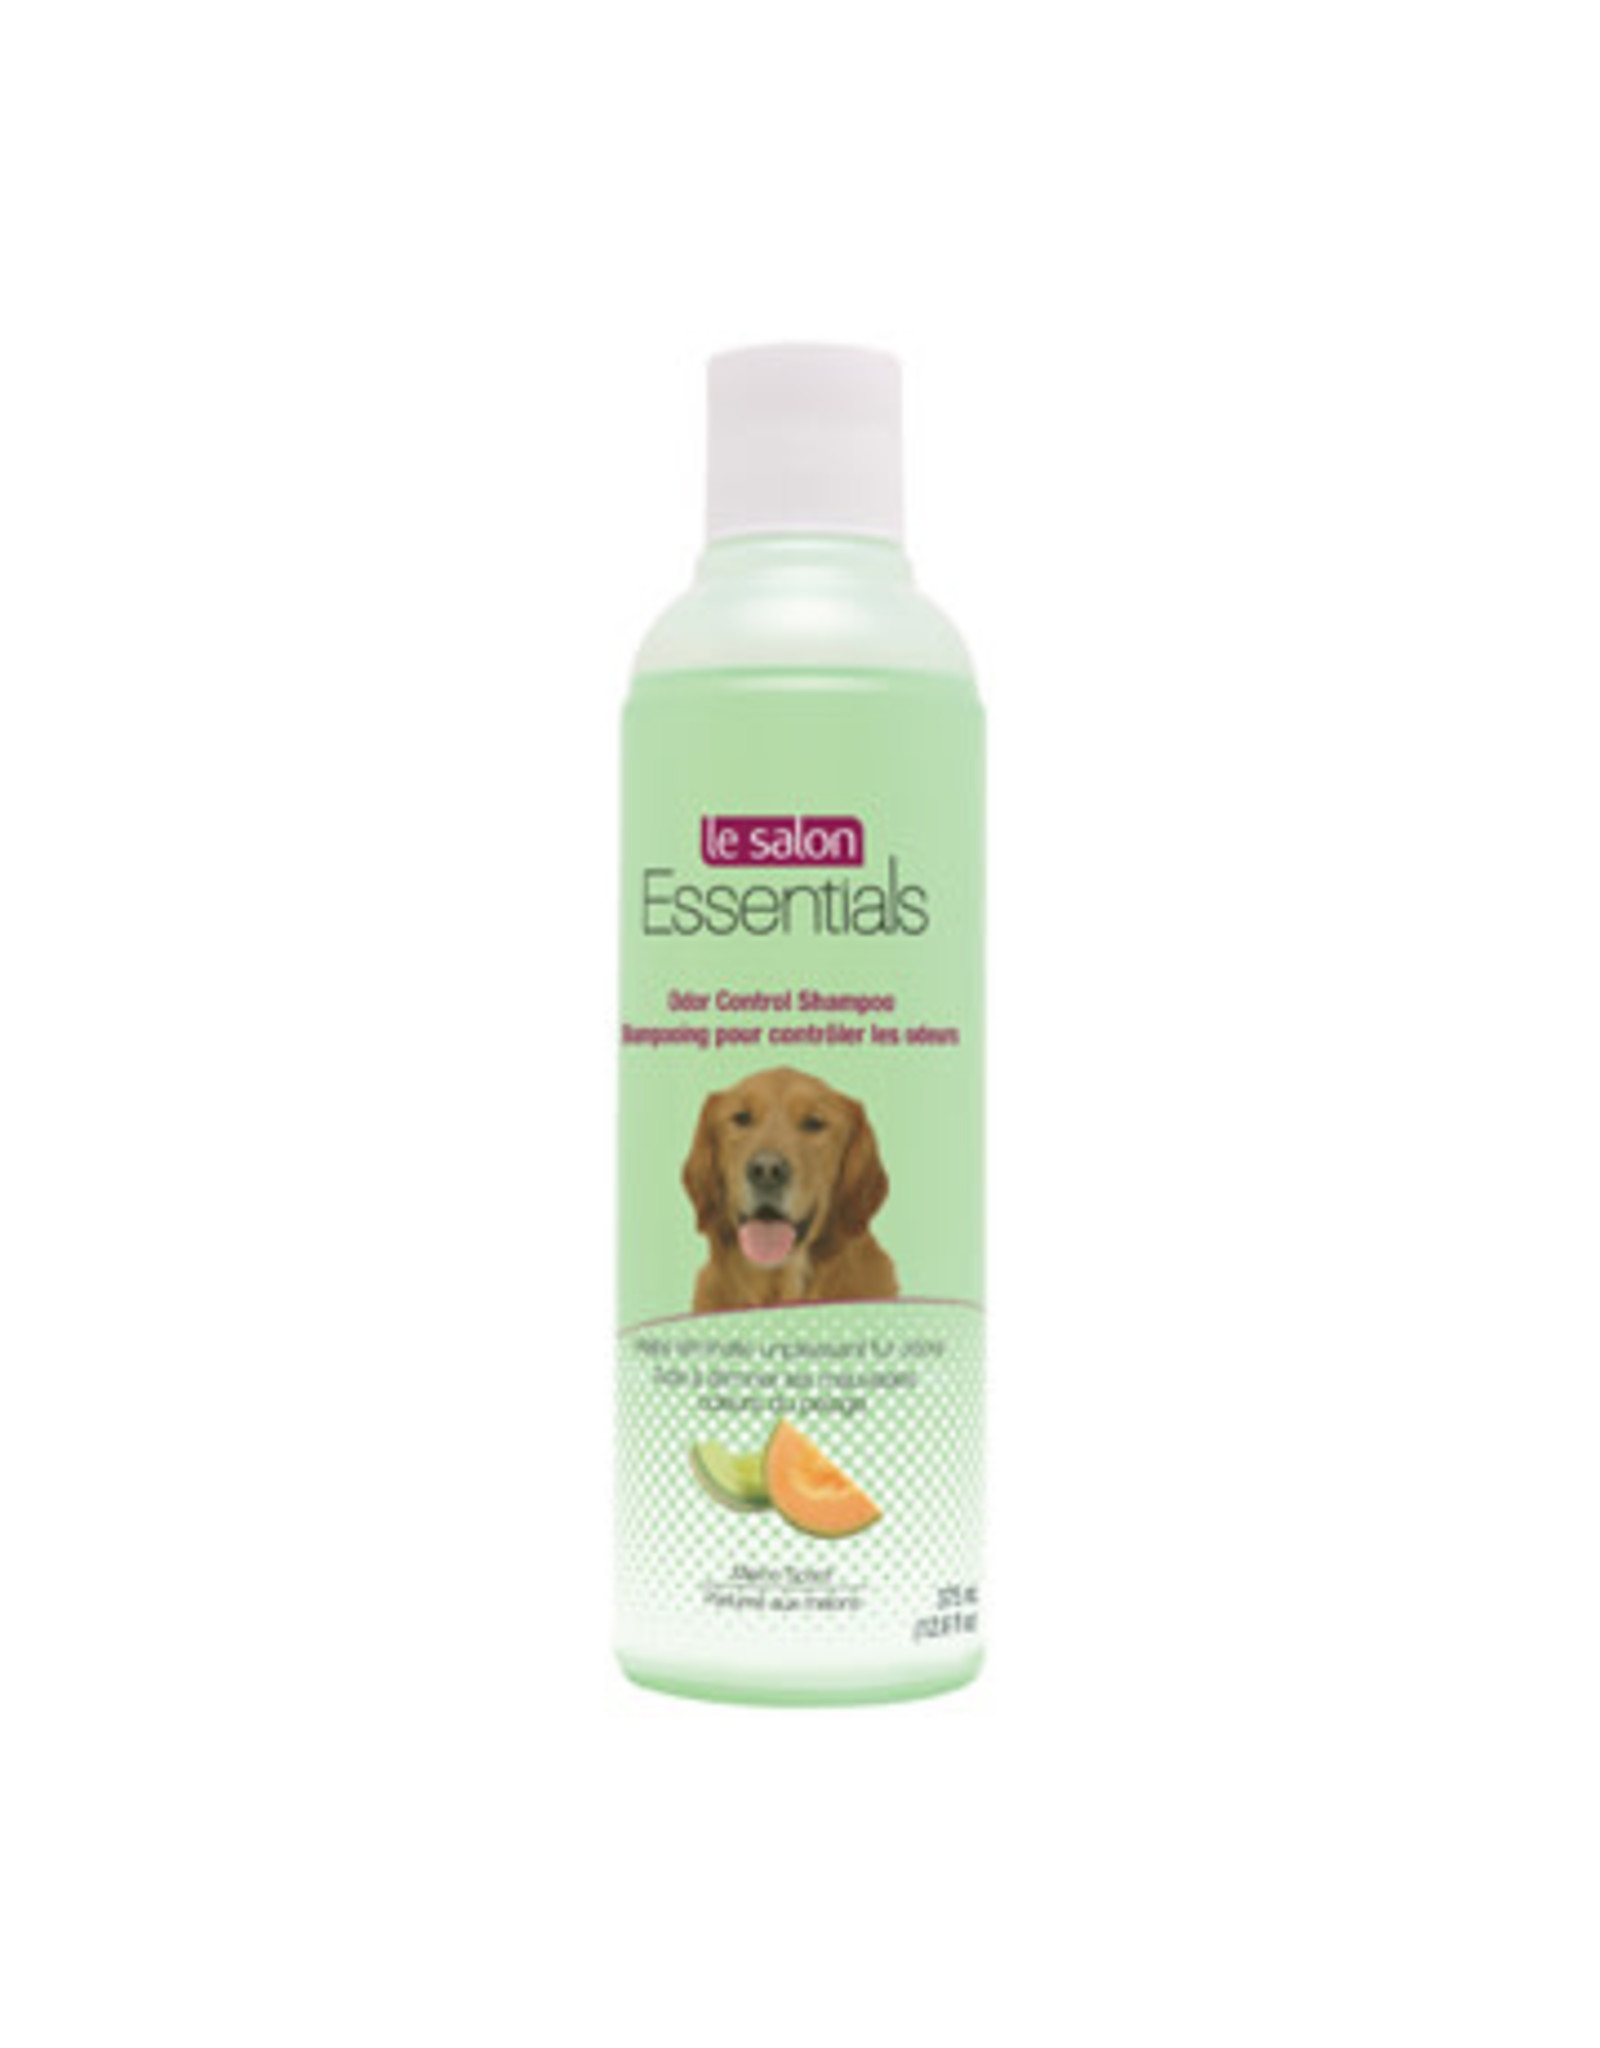 Le Salon LeSalon Essentials Odor Control Shampoo - 375 mL (12.6 fl oz)